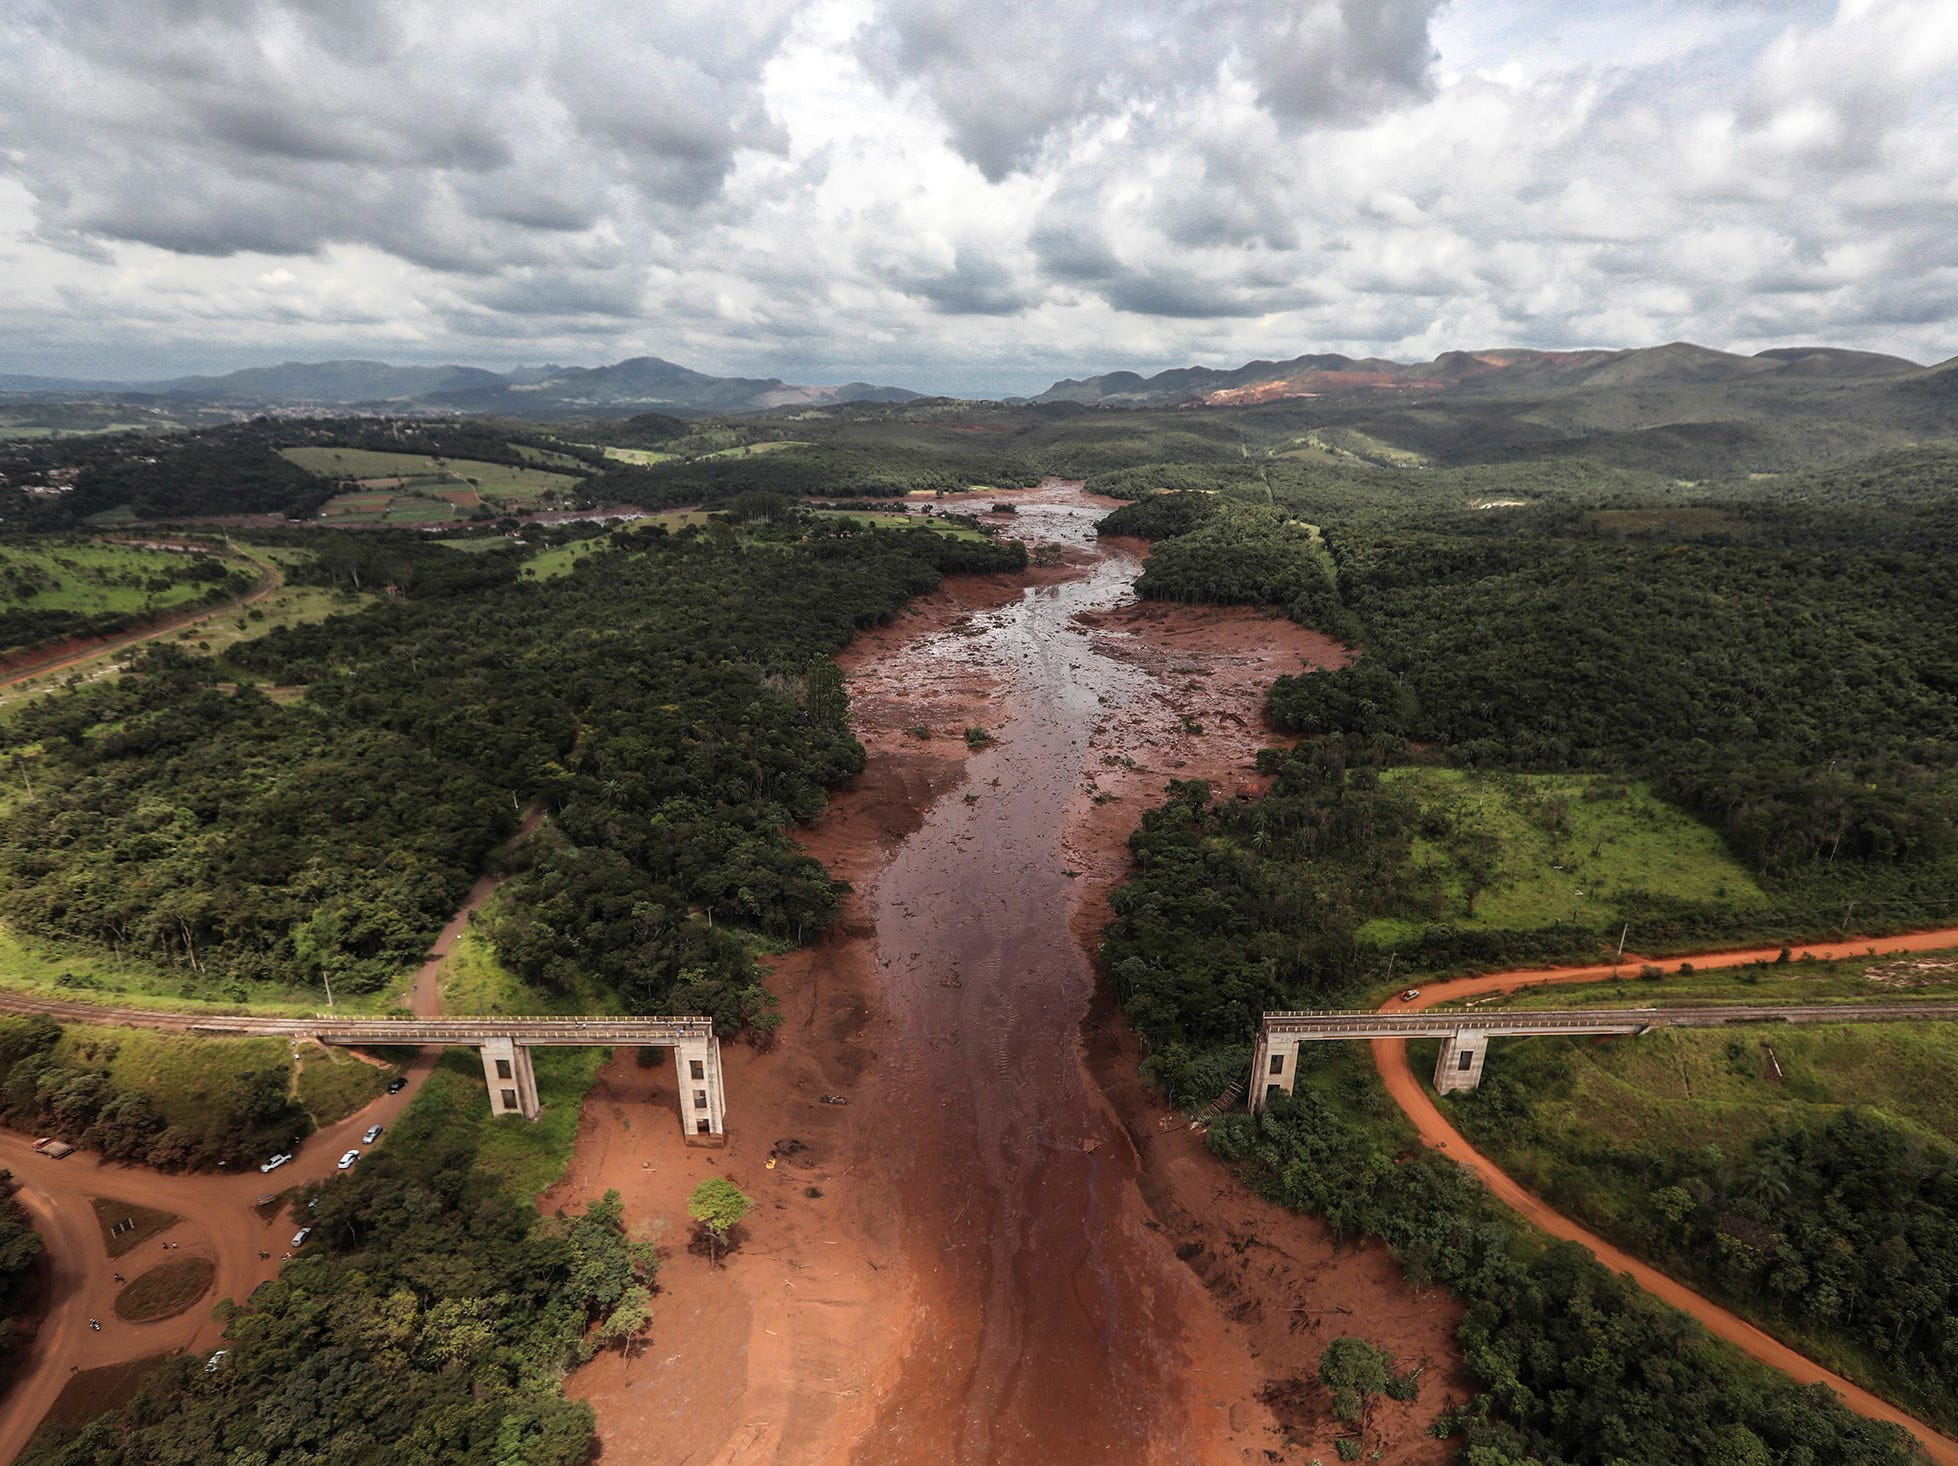 Aerial view over mud and waste from a dam spill in Brumadinho, Minas Gerais, Brazil, Jan. 26, 2019.